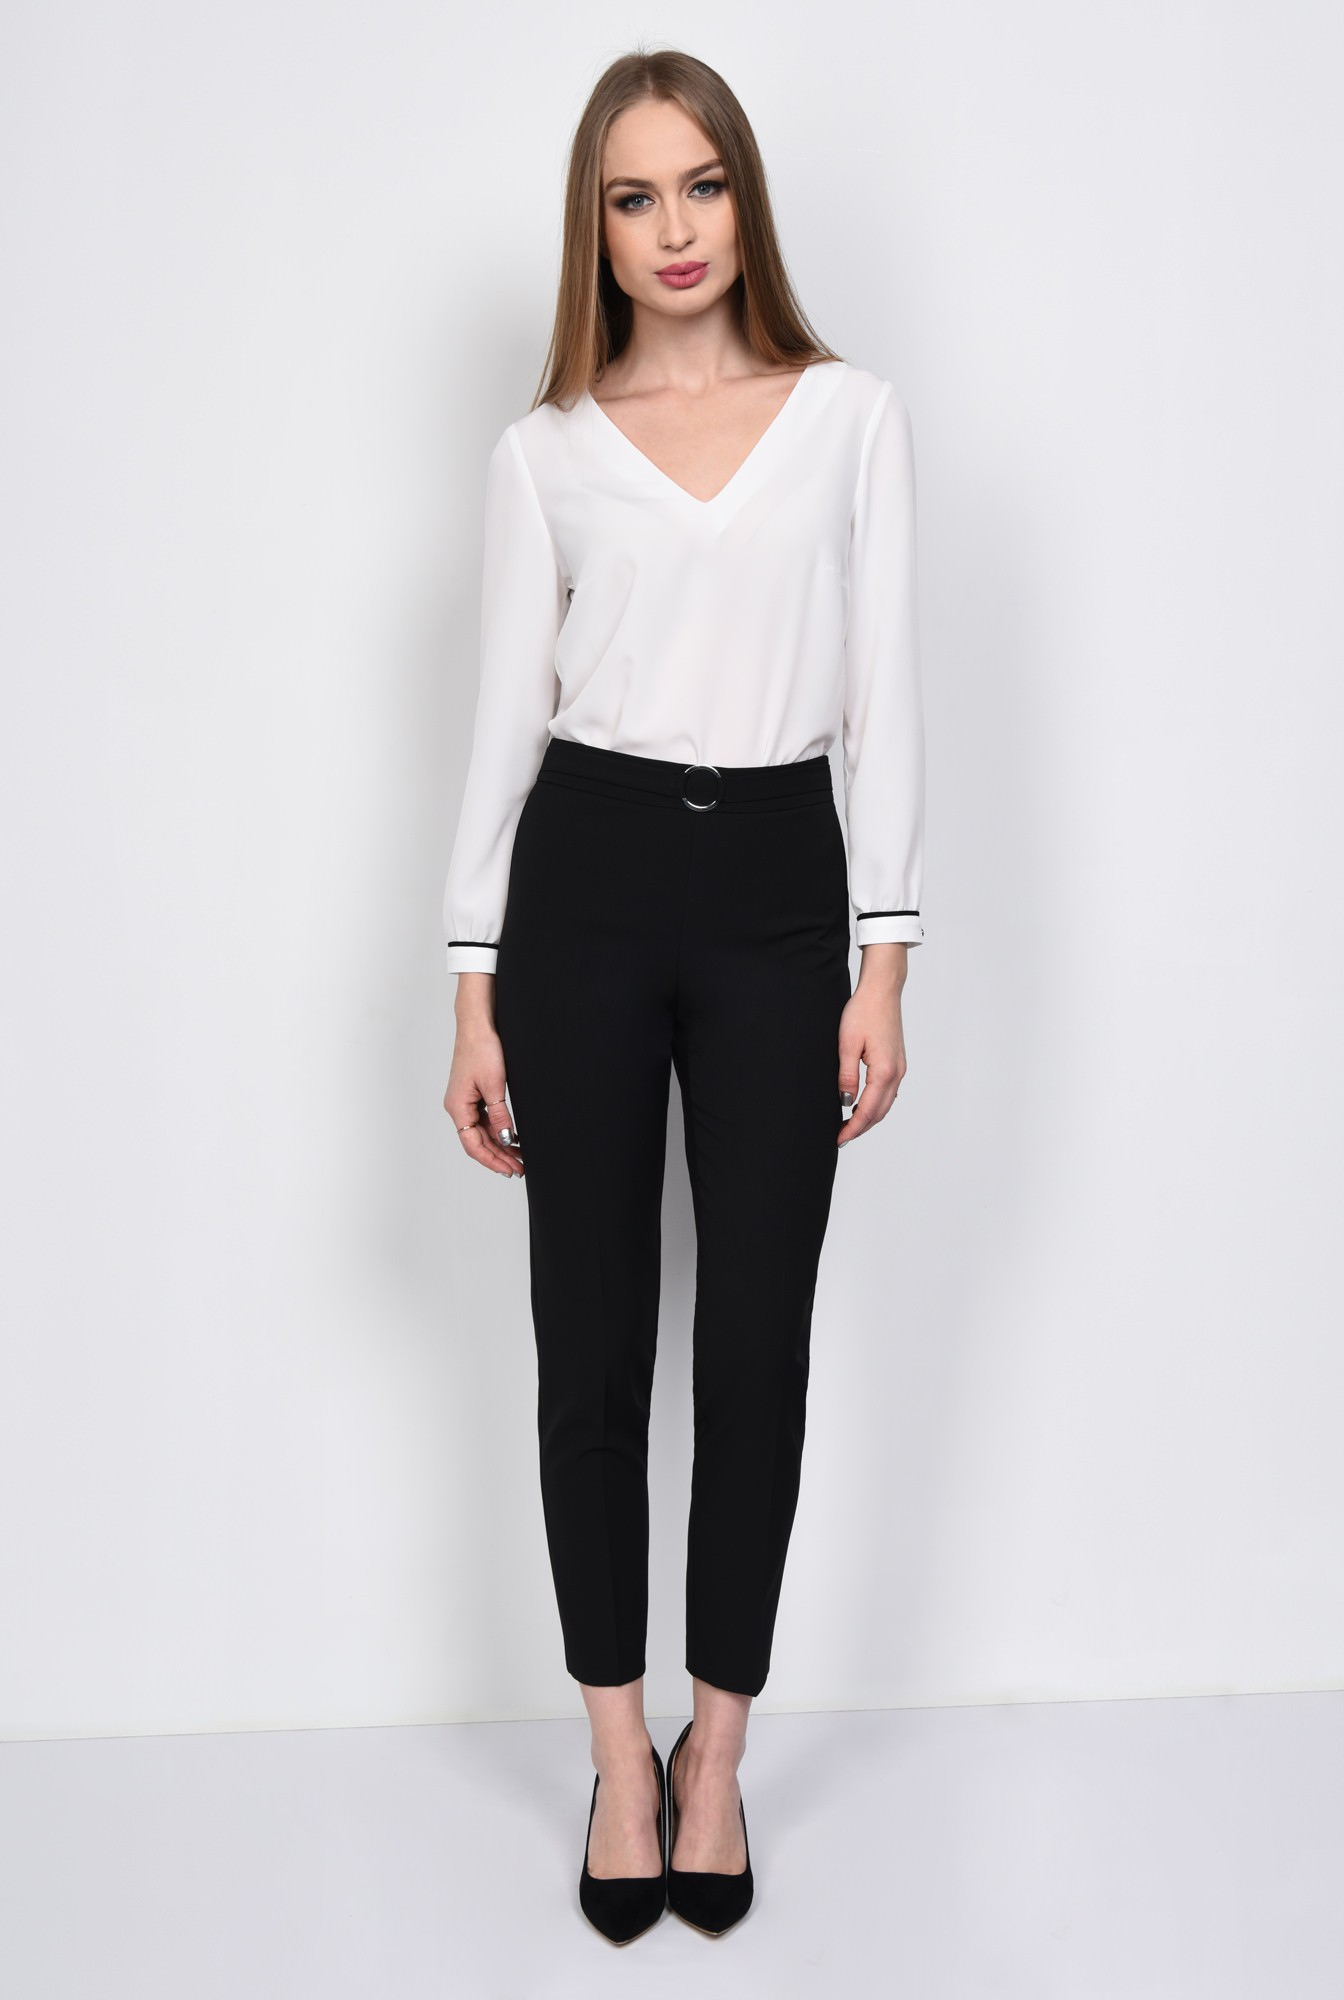 3 - PANTALON OFFICE CONIC PT 127-NEGRU